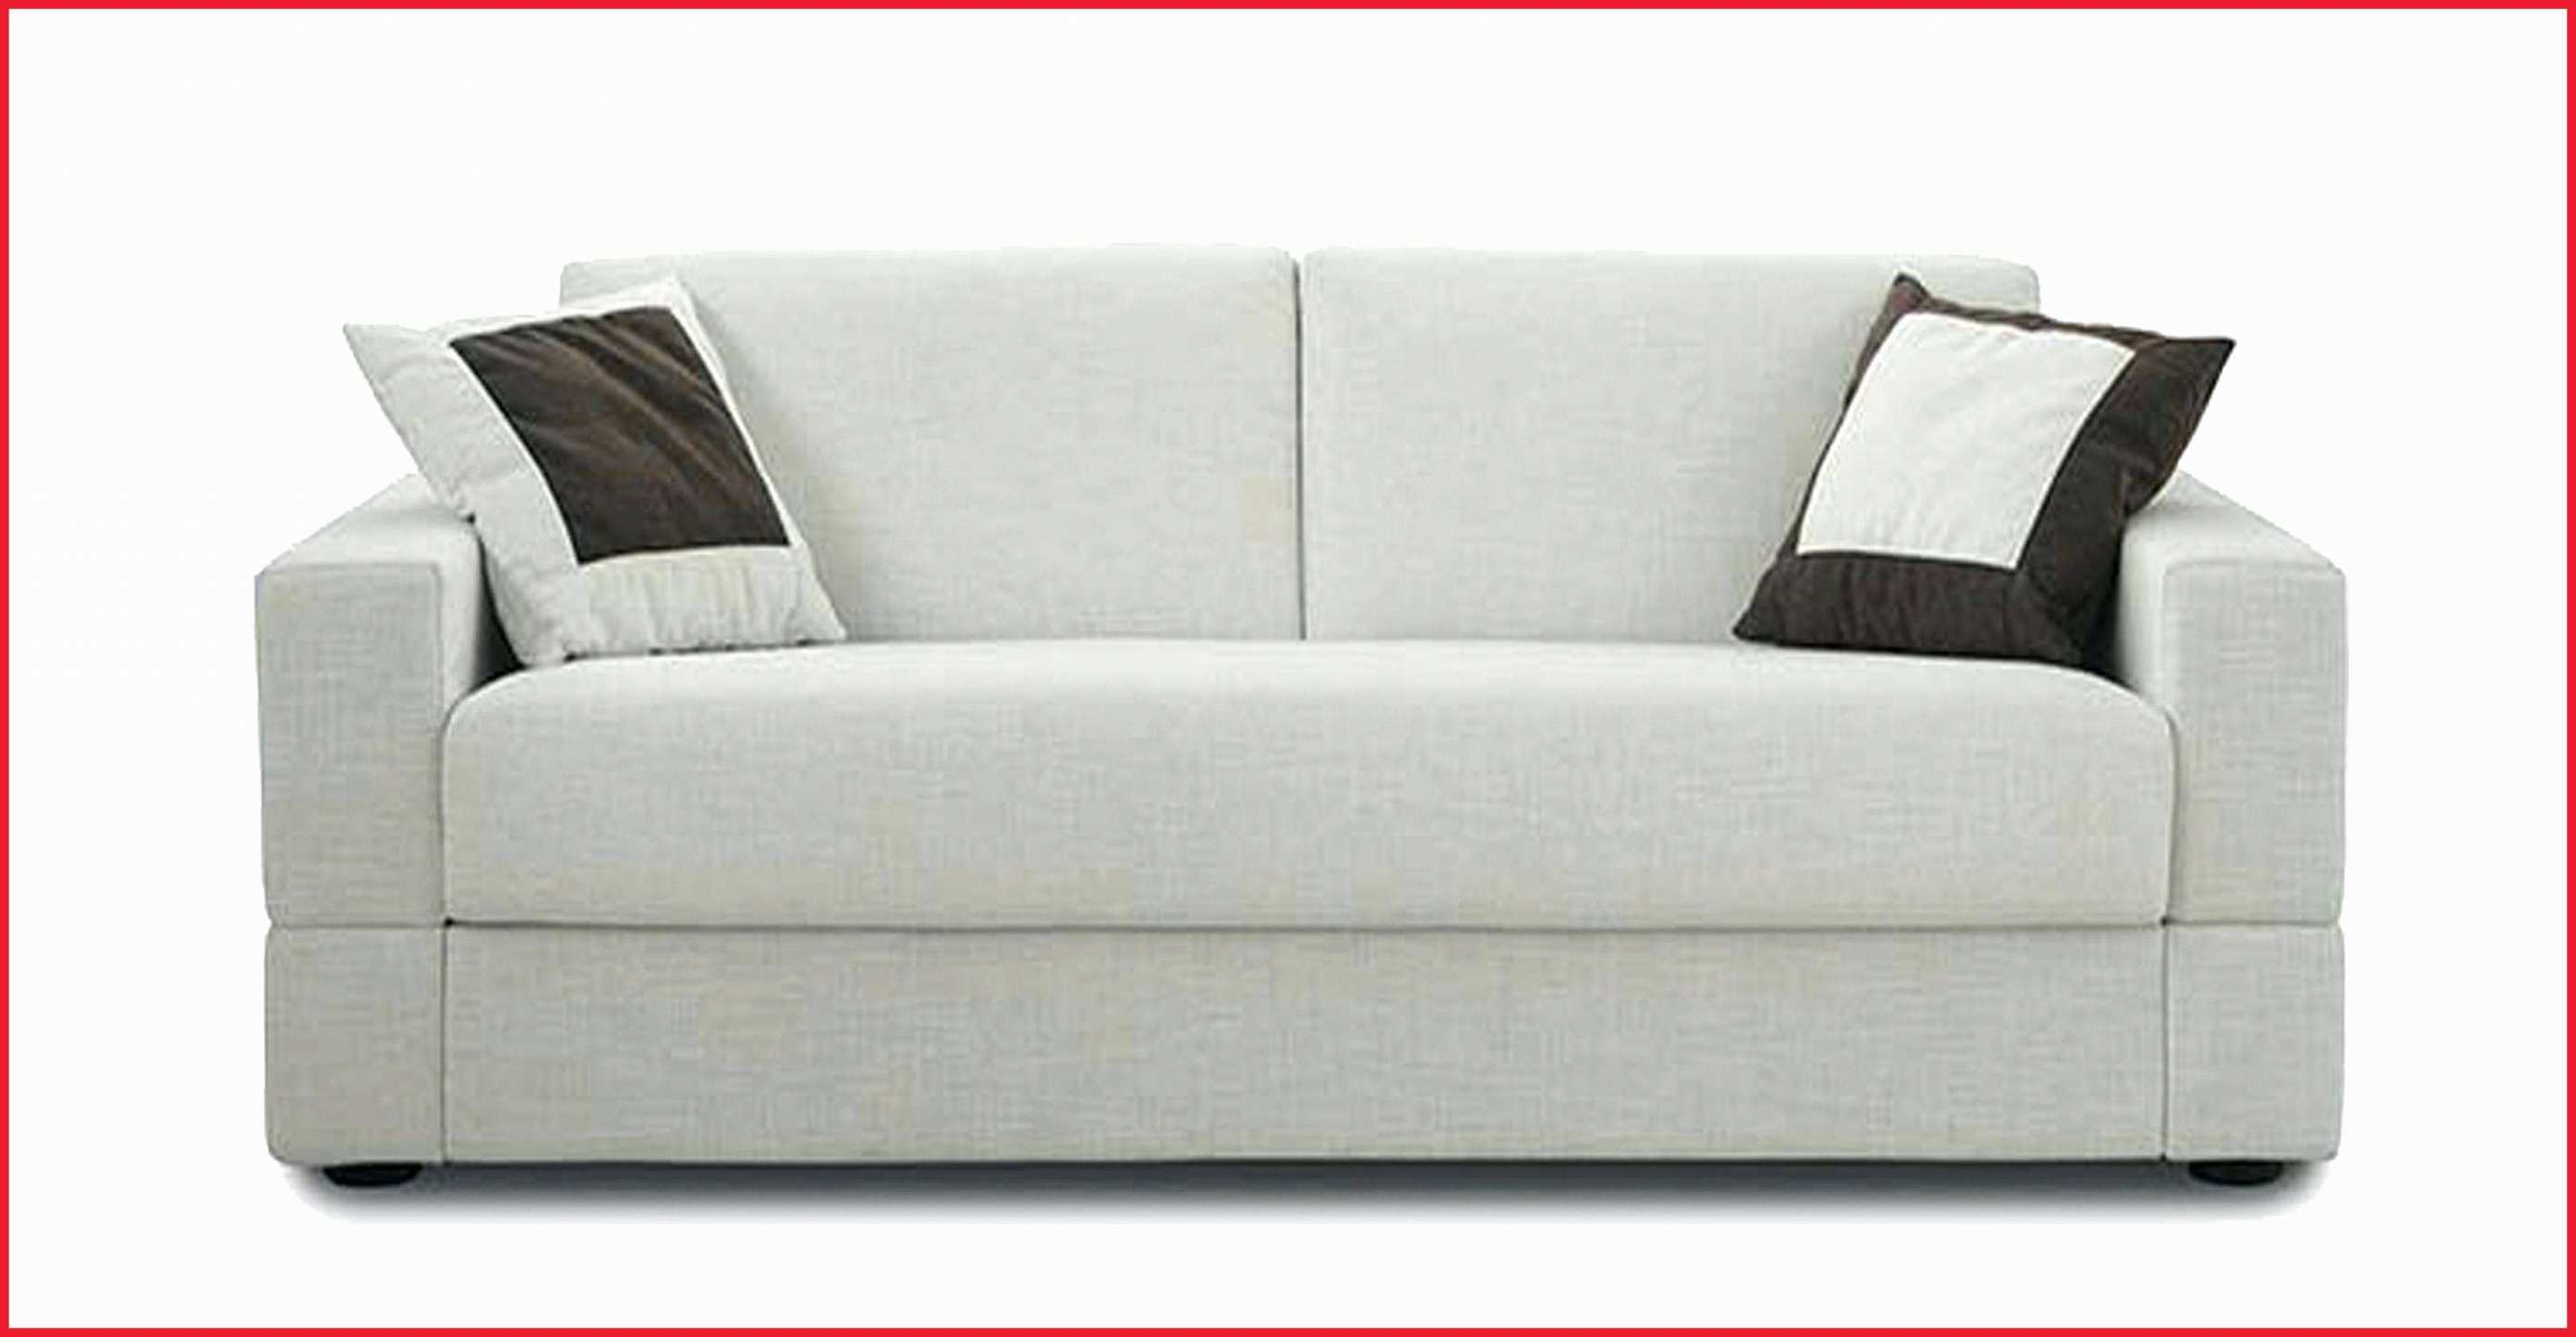 Sofa Cama Barato Carrefour Zwdg sofa Cama Carrefour Beautiful sofas Cama Baratos En Carrefour Fresh